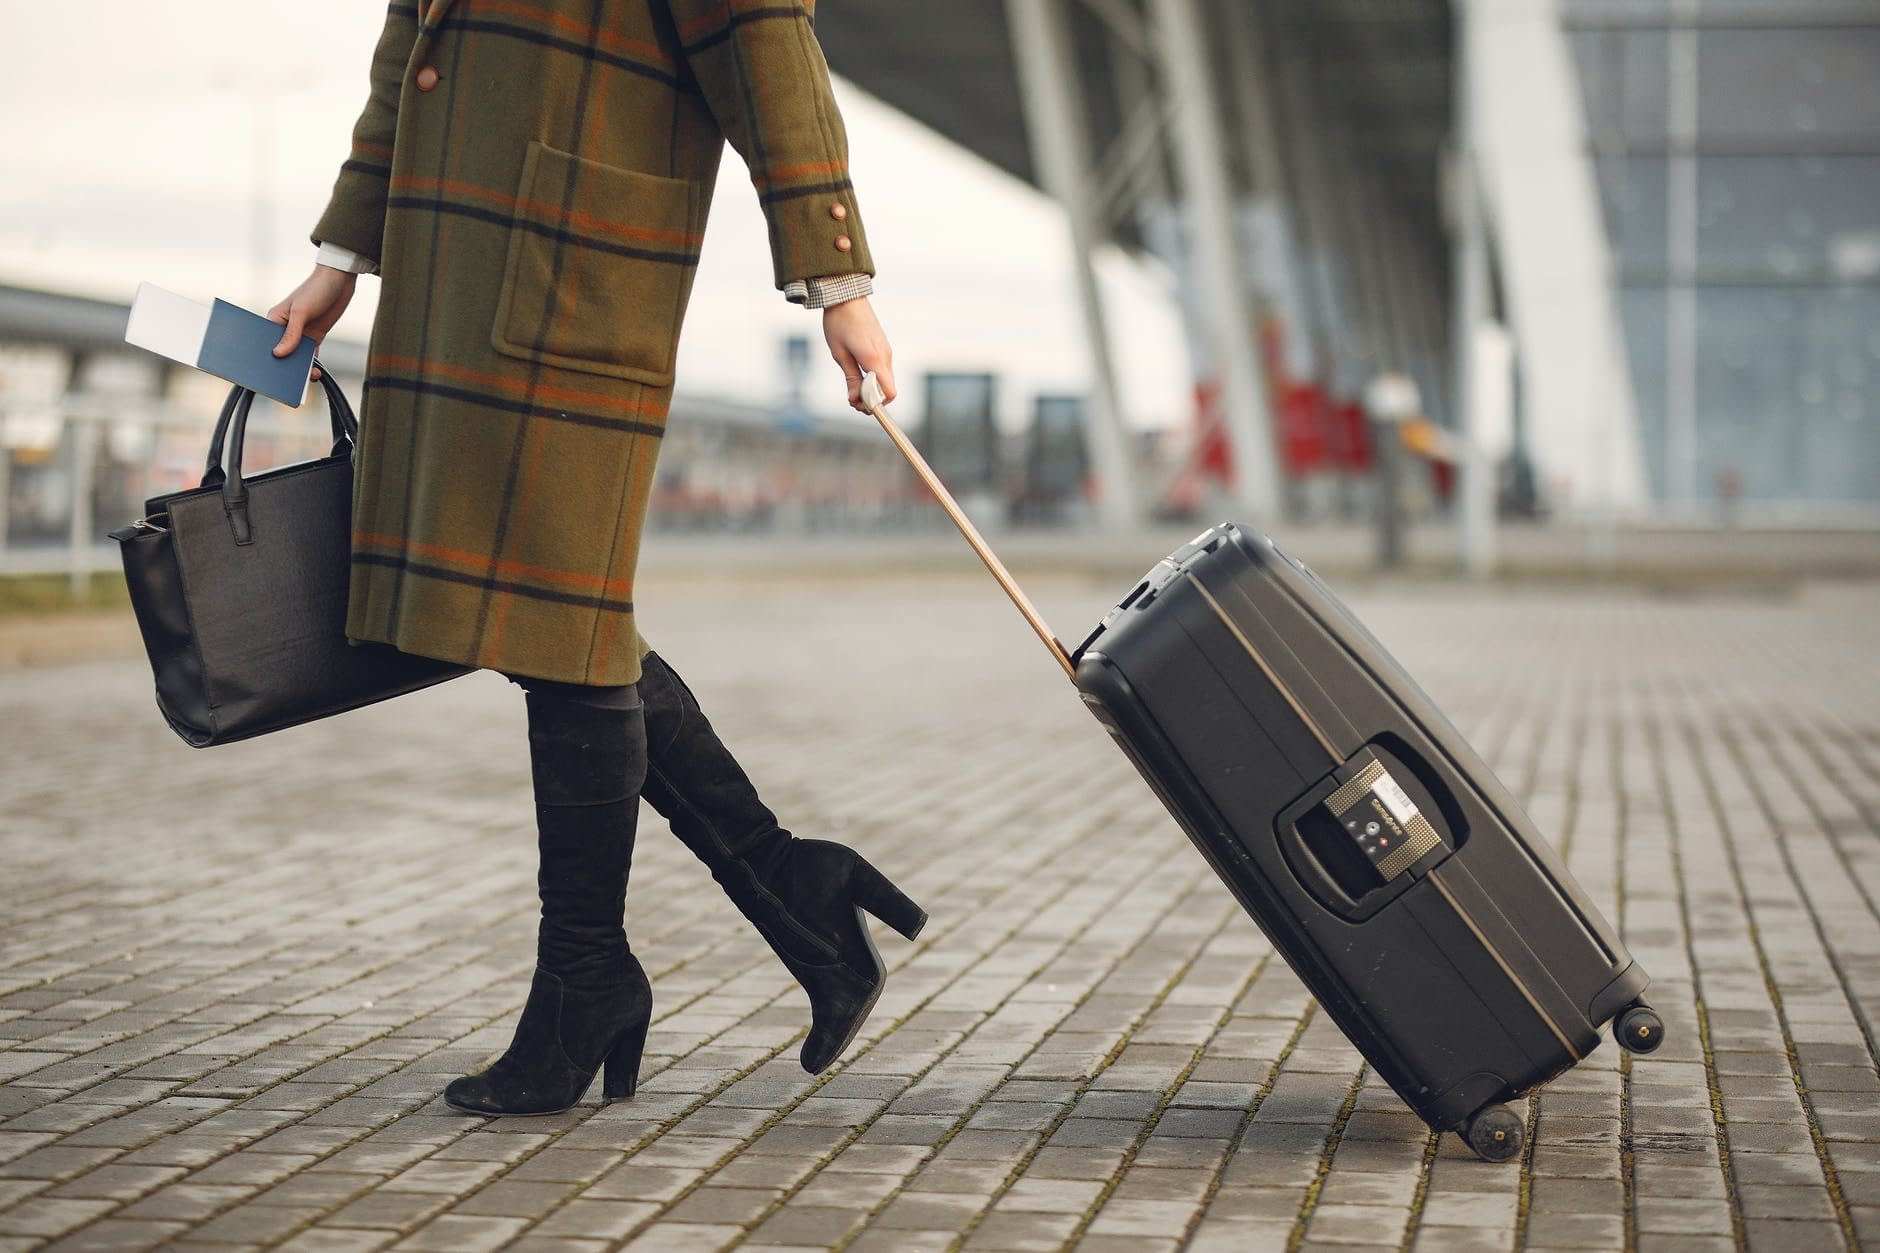 Duffel versus Rolling Luggage: Best Luggage for Summer Travel 2